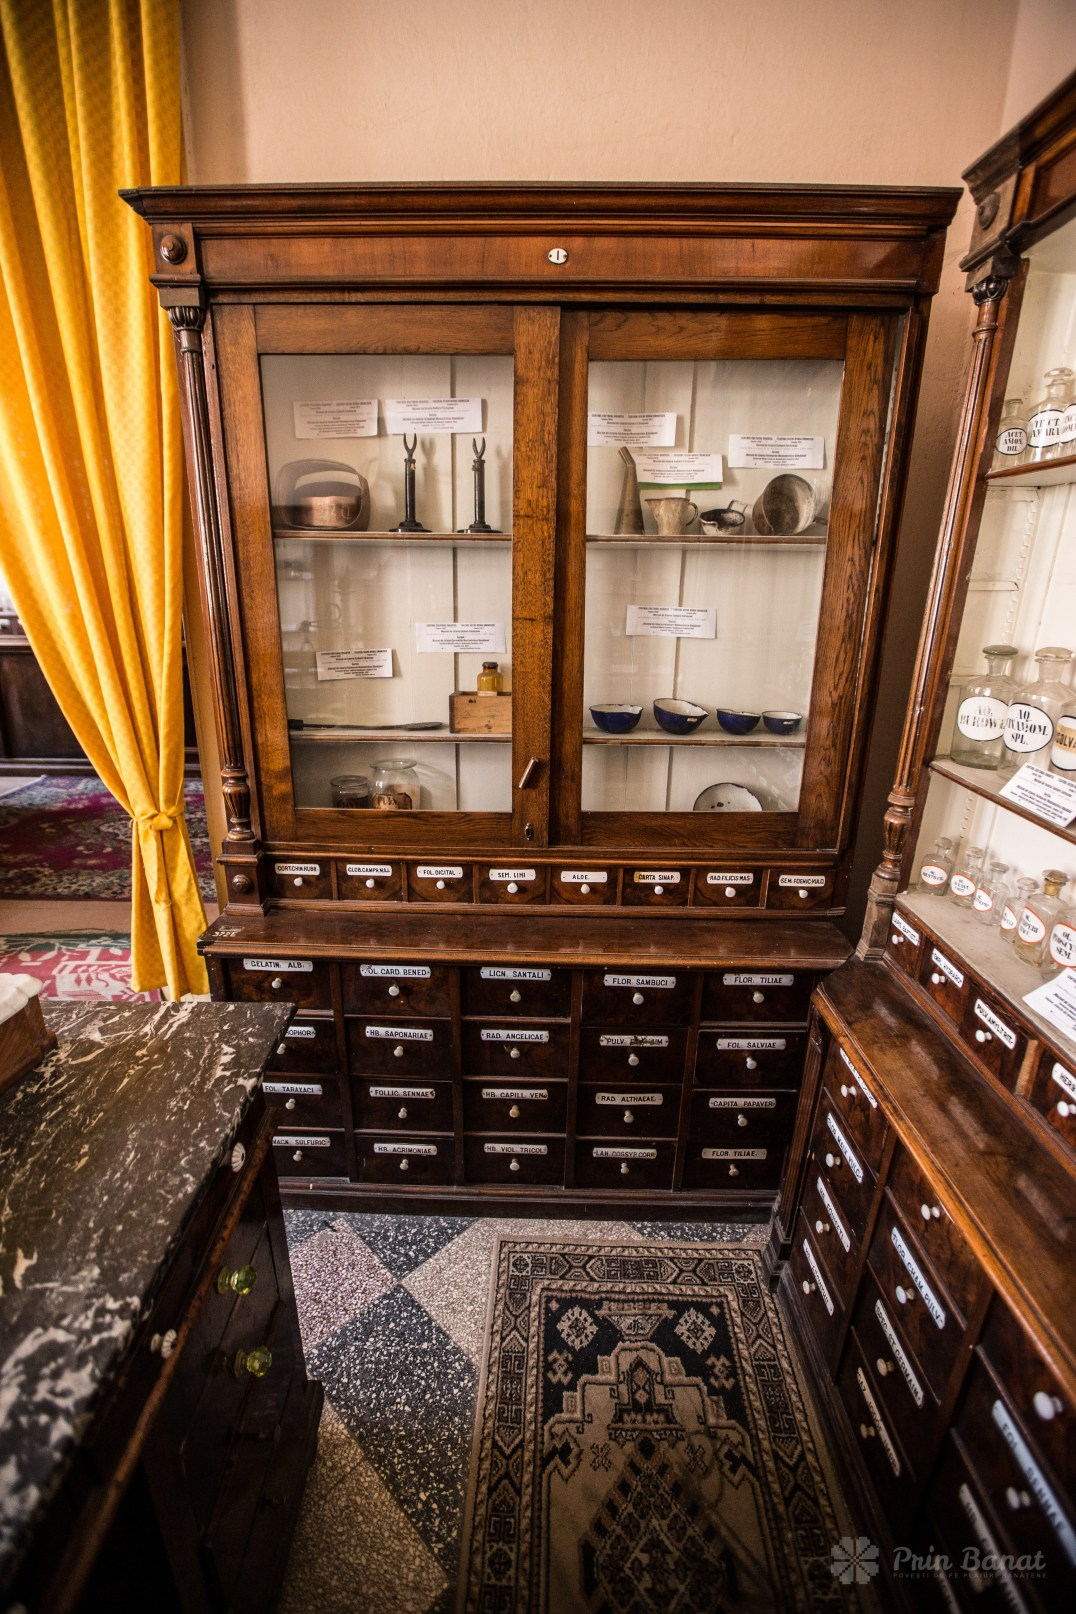 The Historical Pharmacy Museum in Oravița